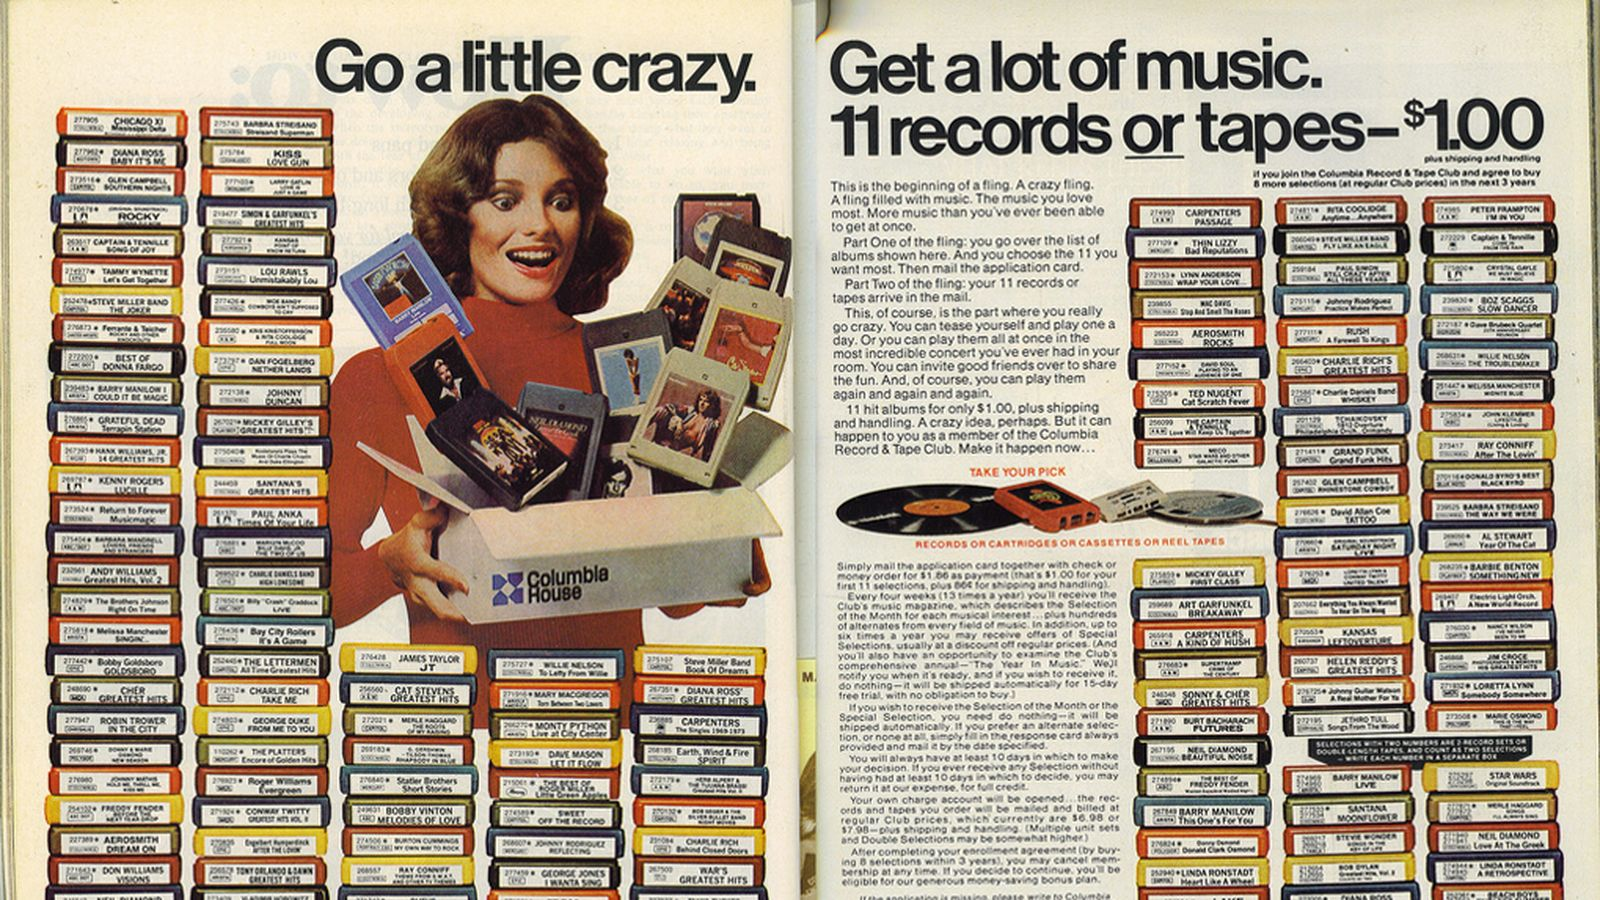 Magazine spread of tape titles.